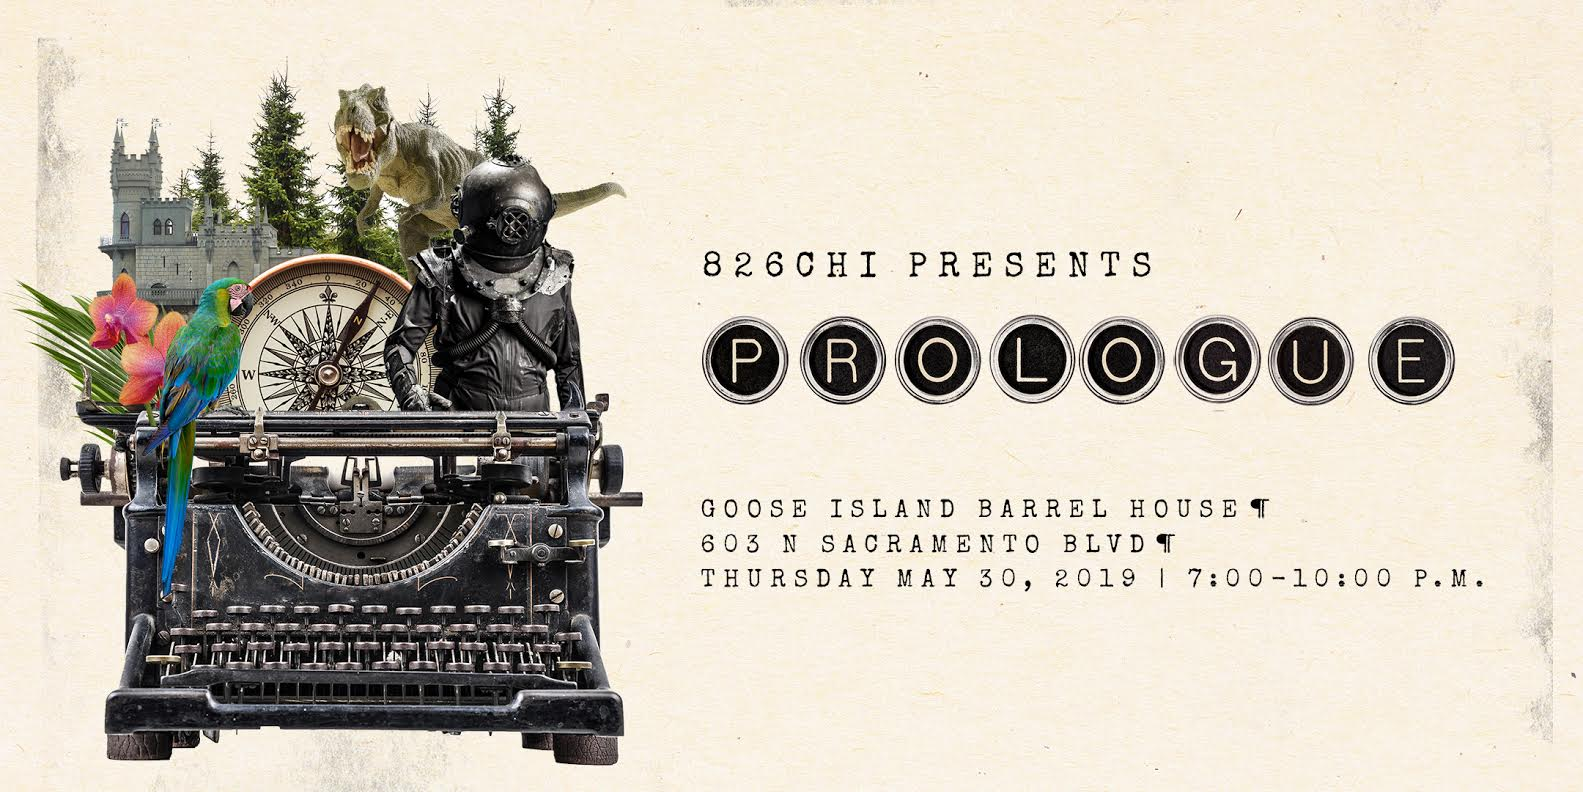 Graphic ad for Prologue